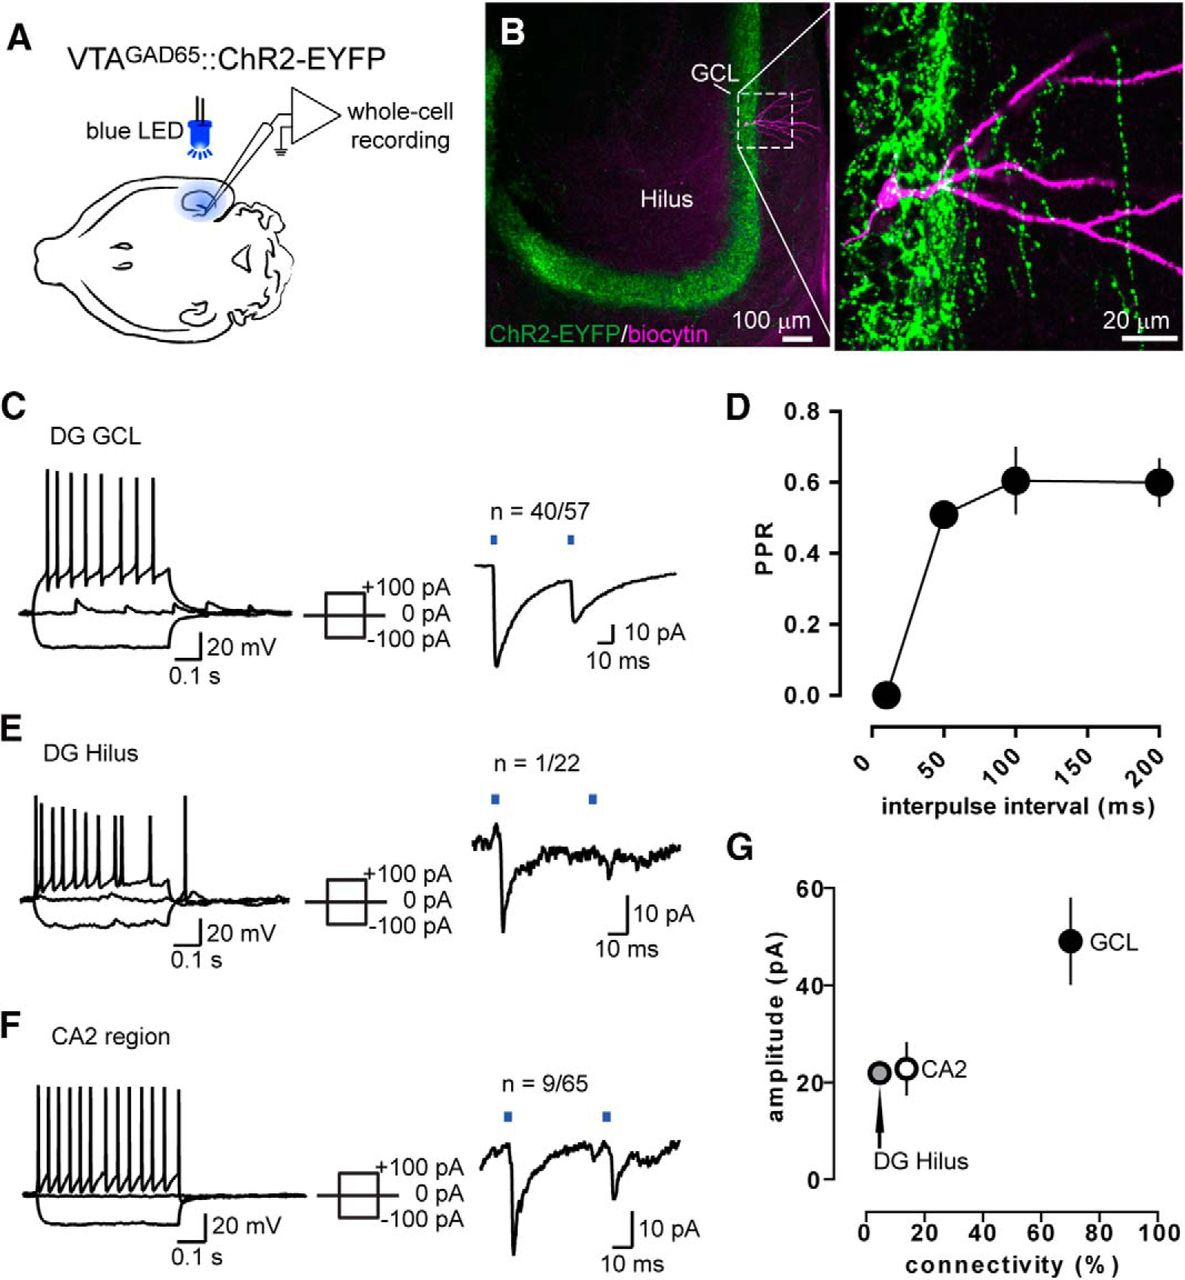 Vta Projection Neurons Releasing Gaba And Glutamate In The Dentate U2014 Lights Fiber On Wiring Your Home For Optic Download Figure